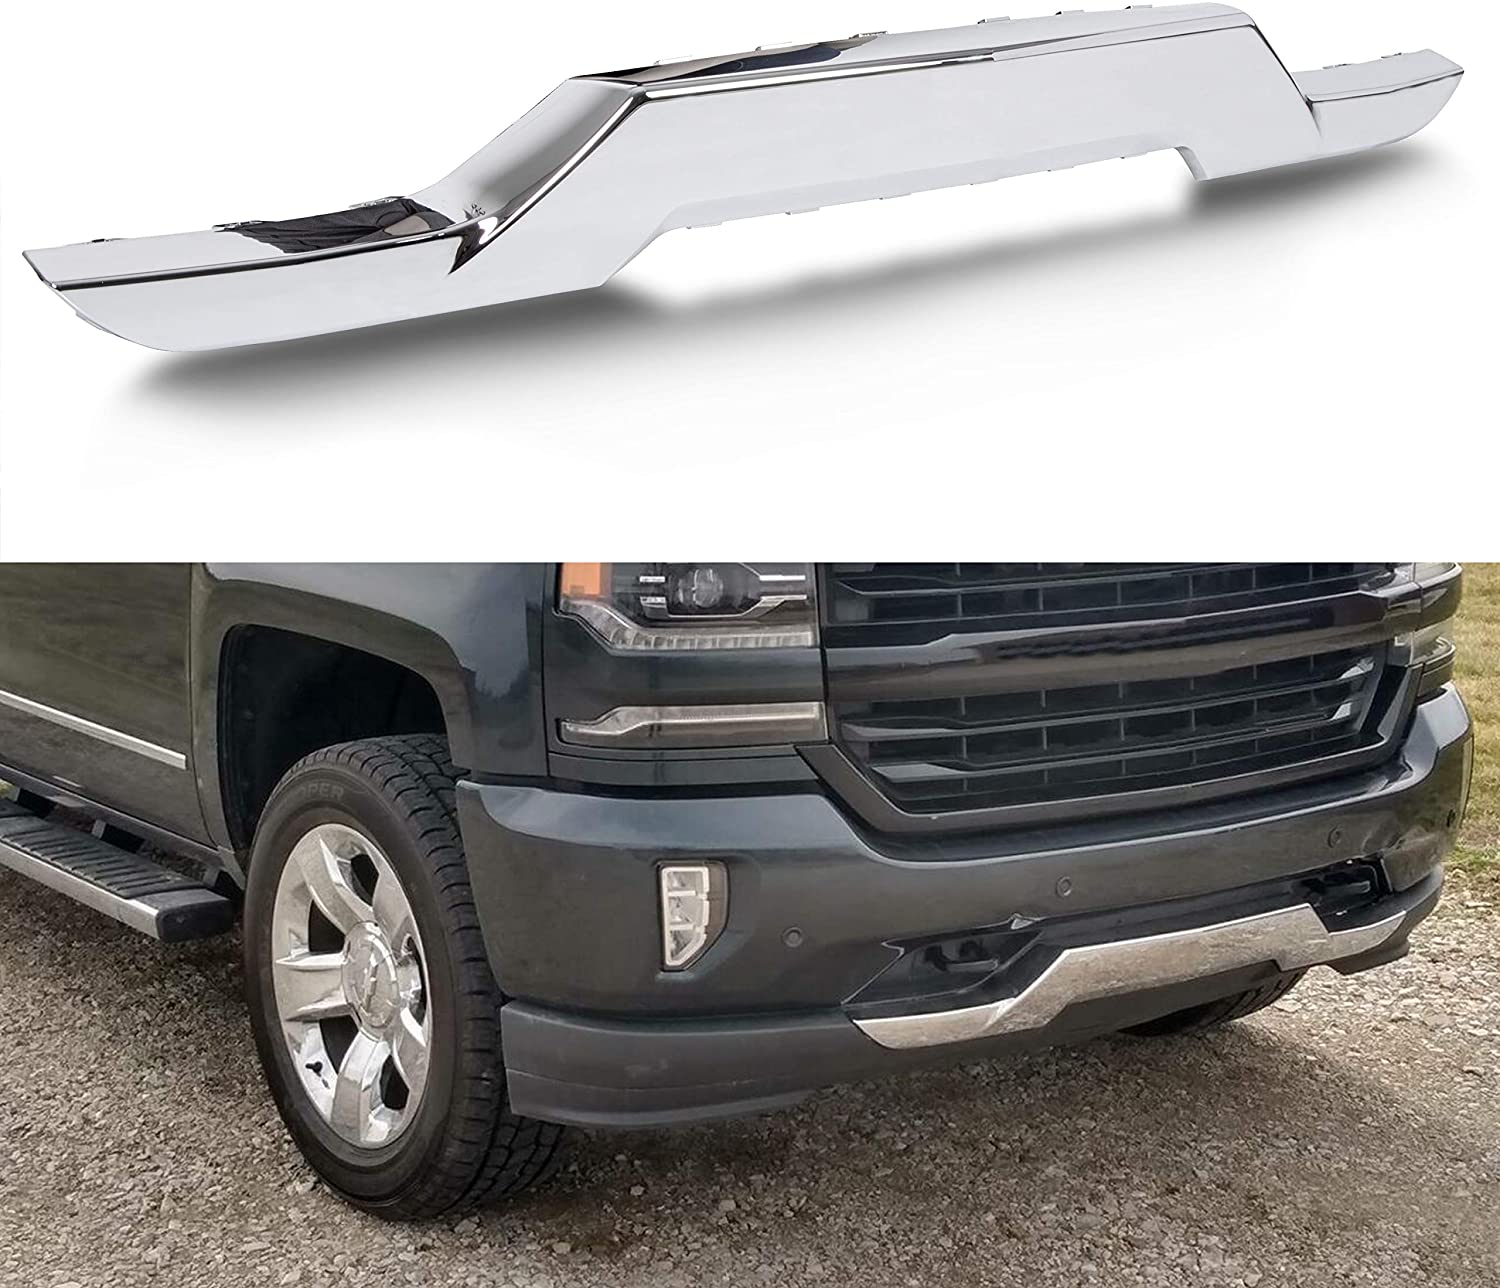 Buy Ecotric Front Bumper Skid Plate Chrome Compatible With 2016 2019 Chevy Silverado 1500 Replacement For 23243083 Gm1044128 Online In Indonesia B08bc6ss2j